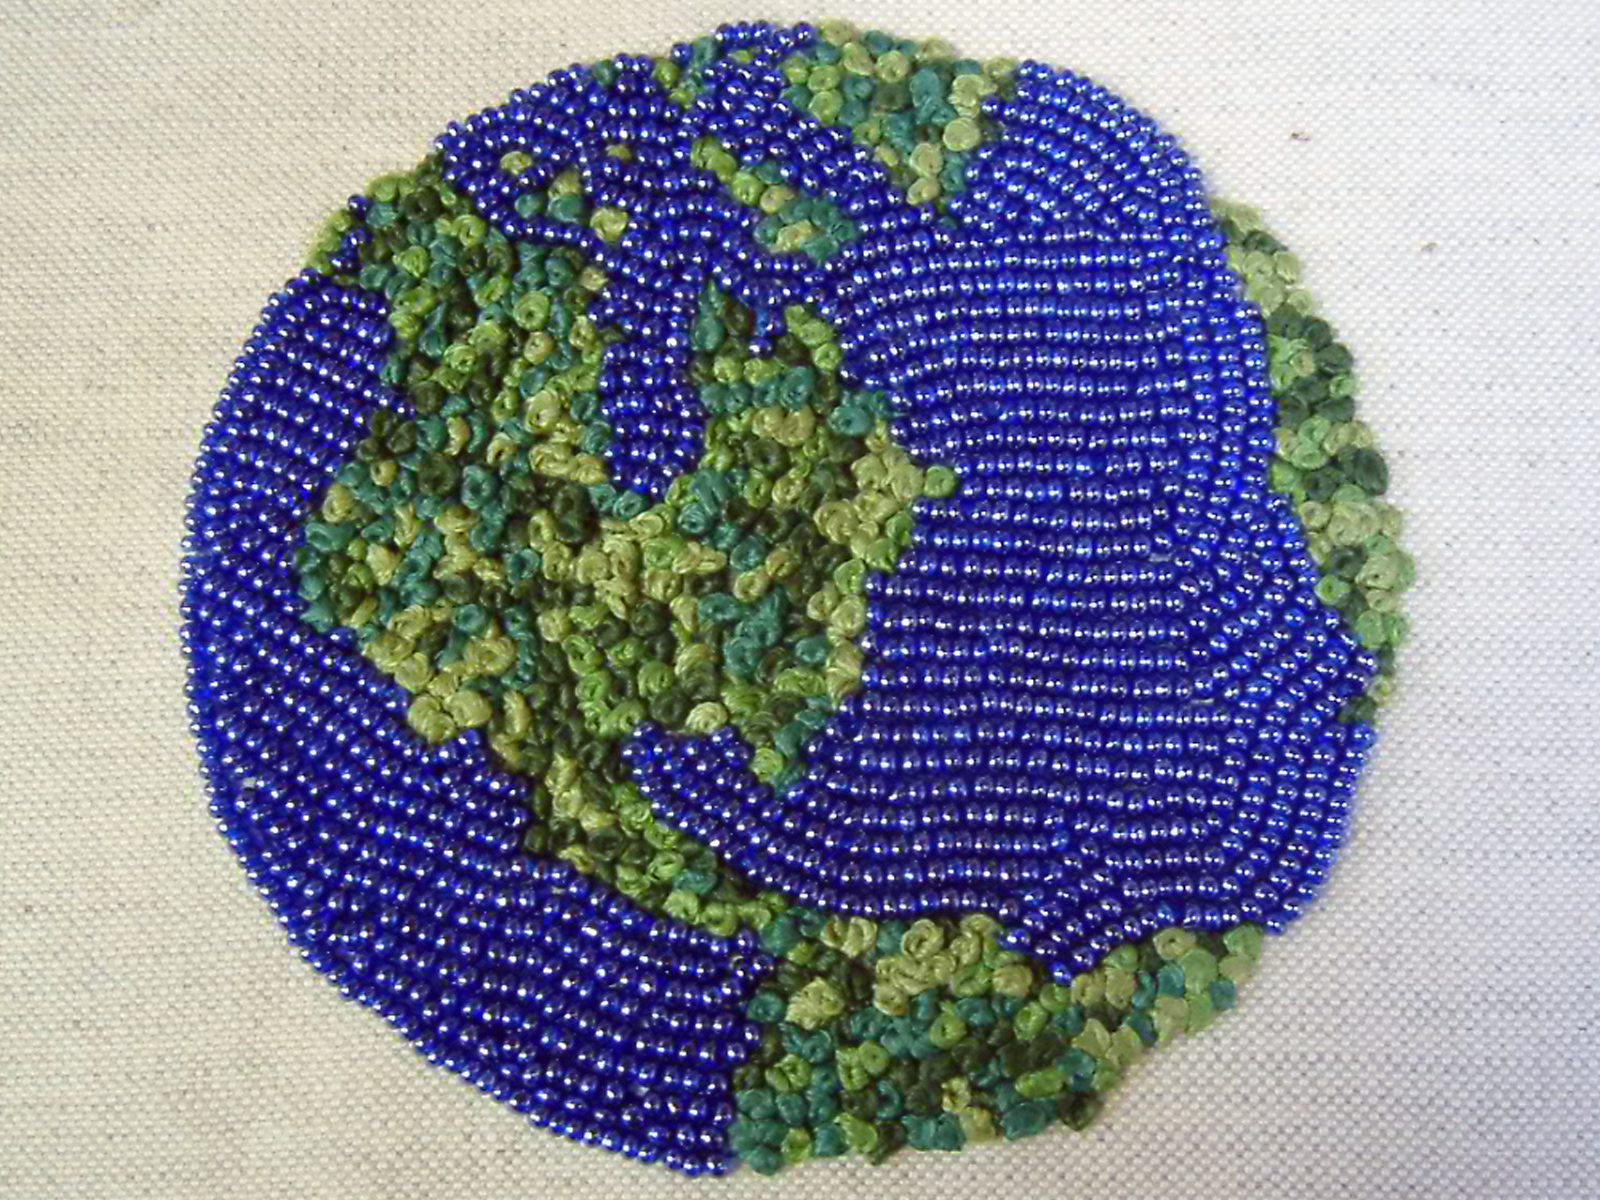 Artwork of the world created in beadwork and french knots